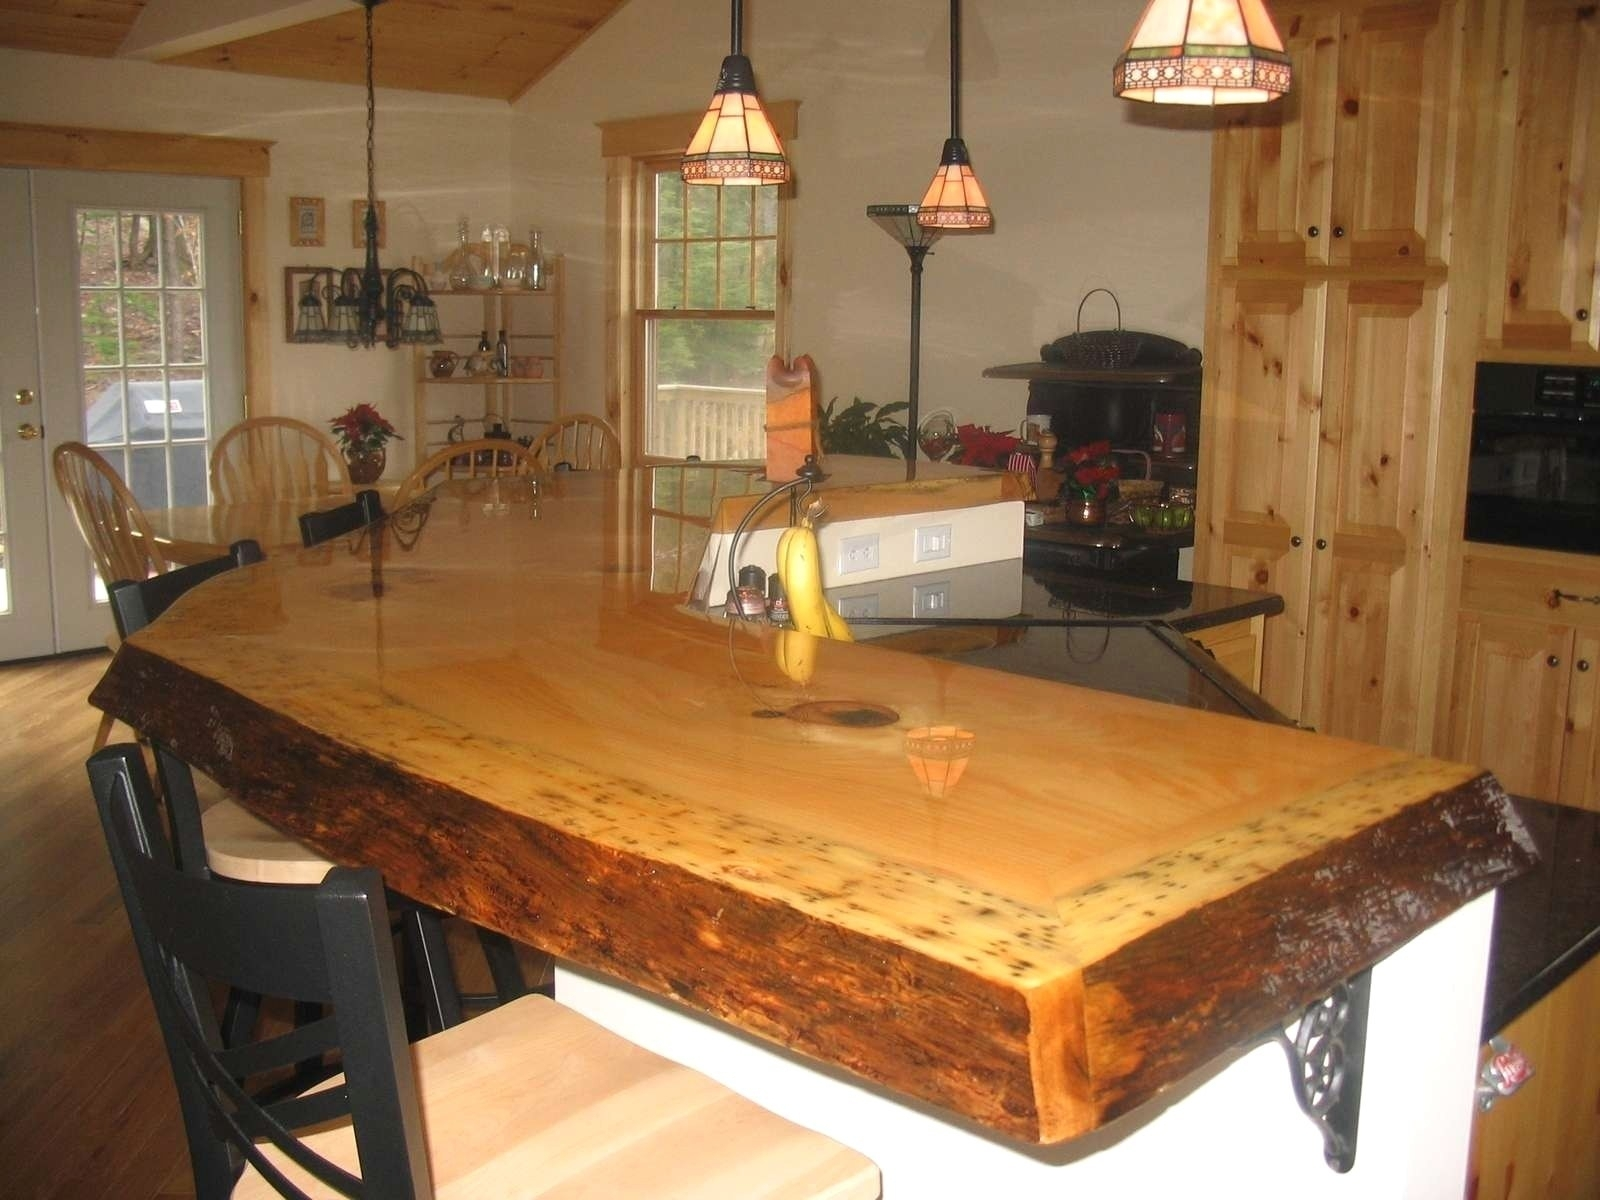 Clear Epoxy Resin For Countertops